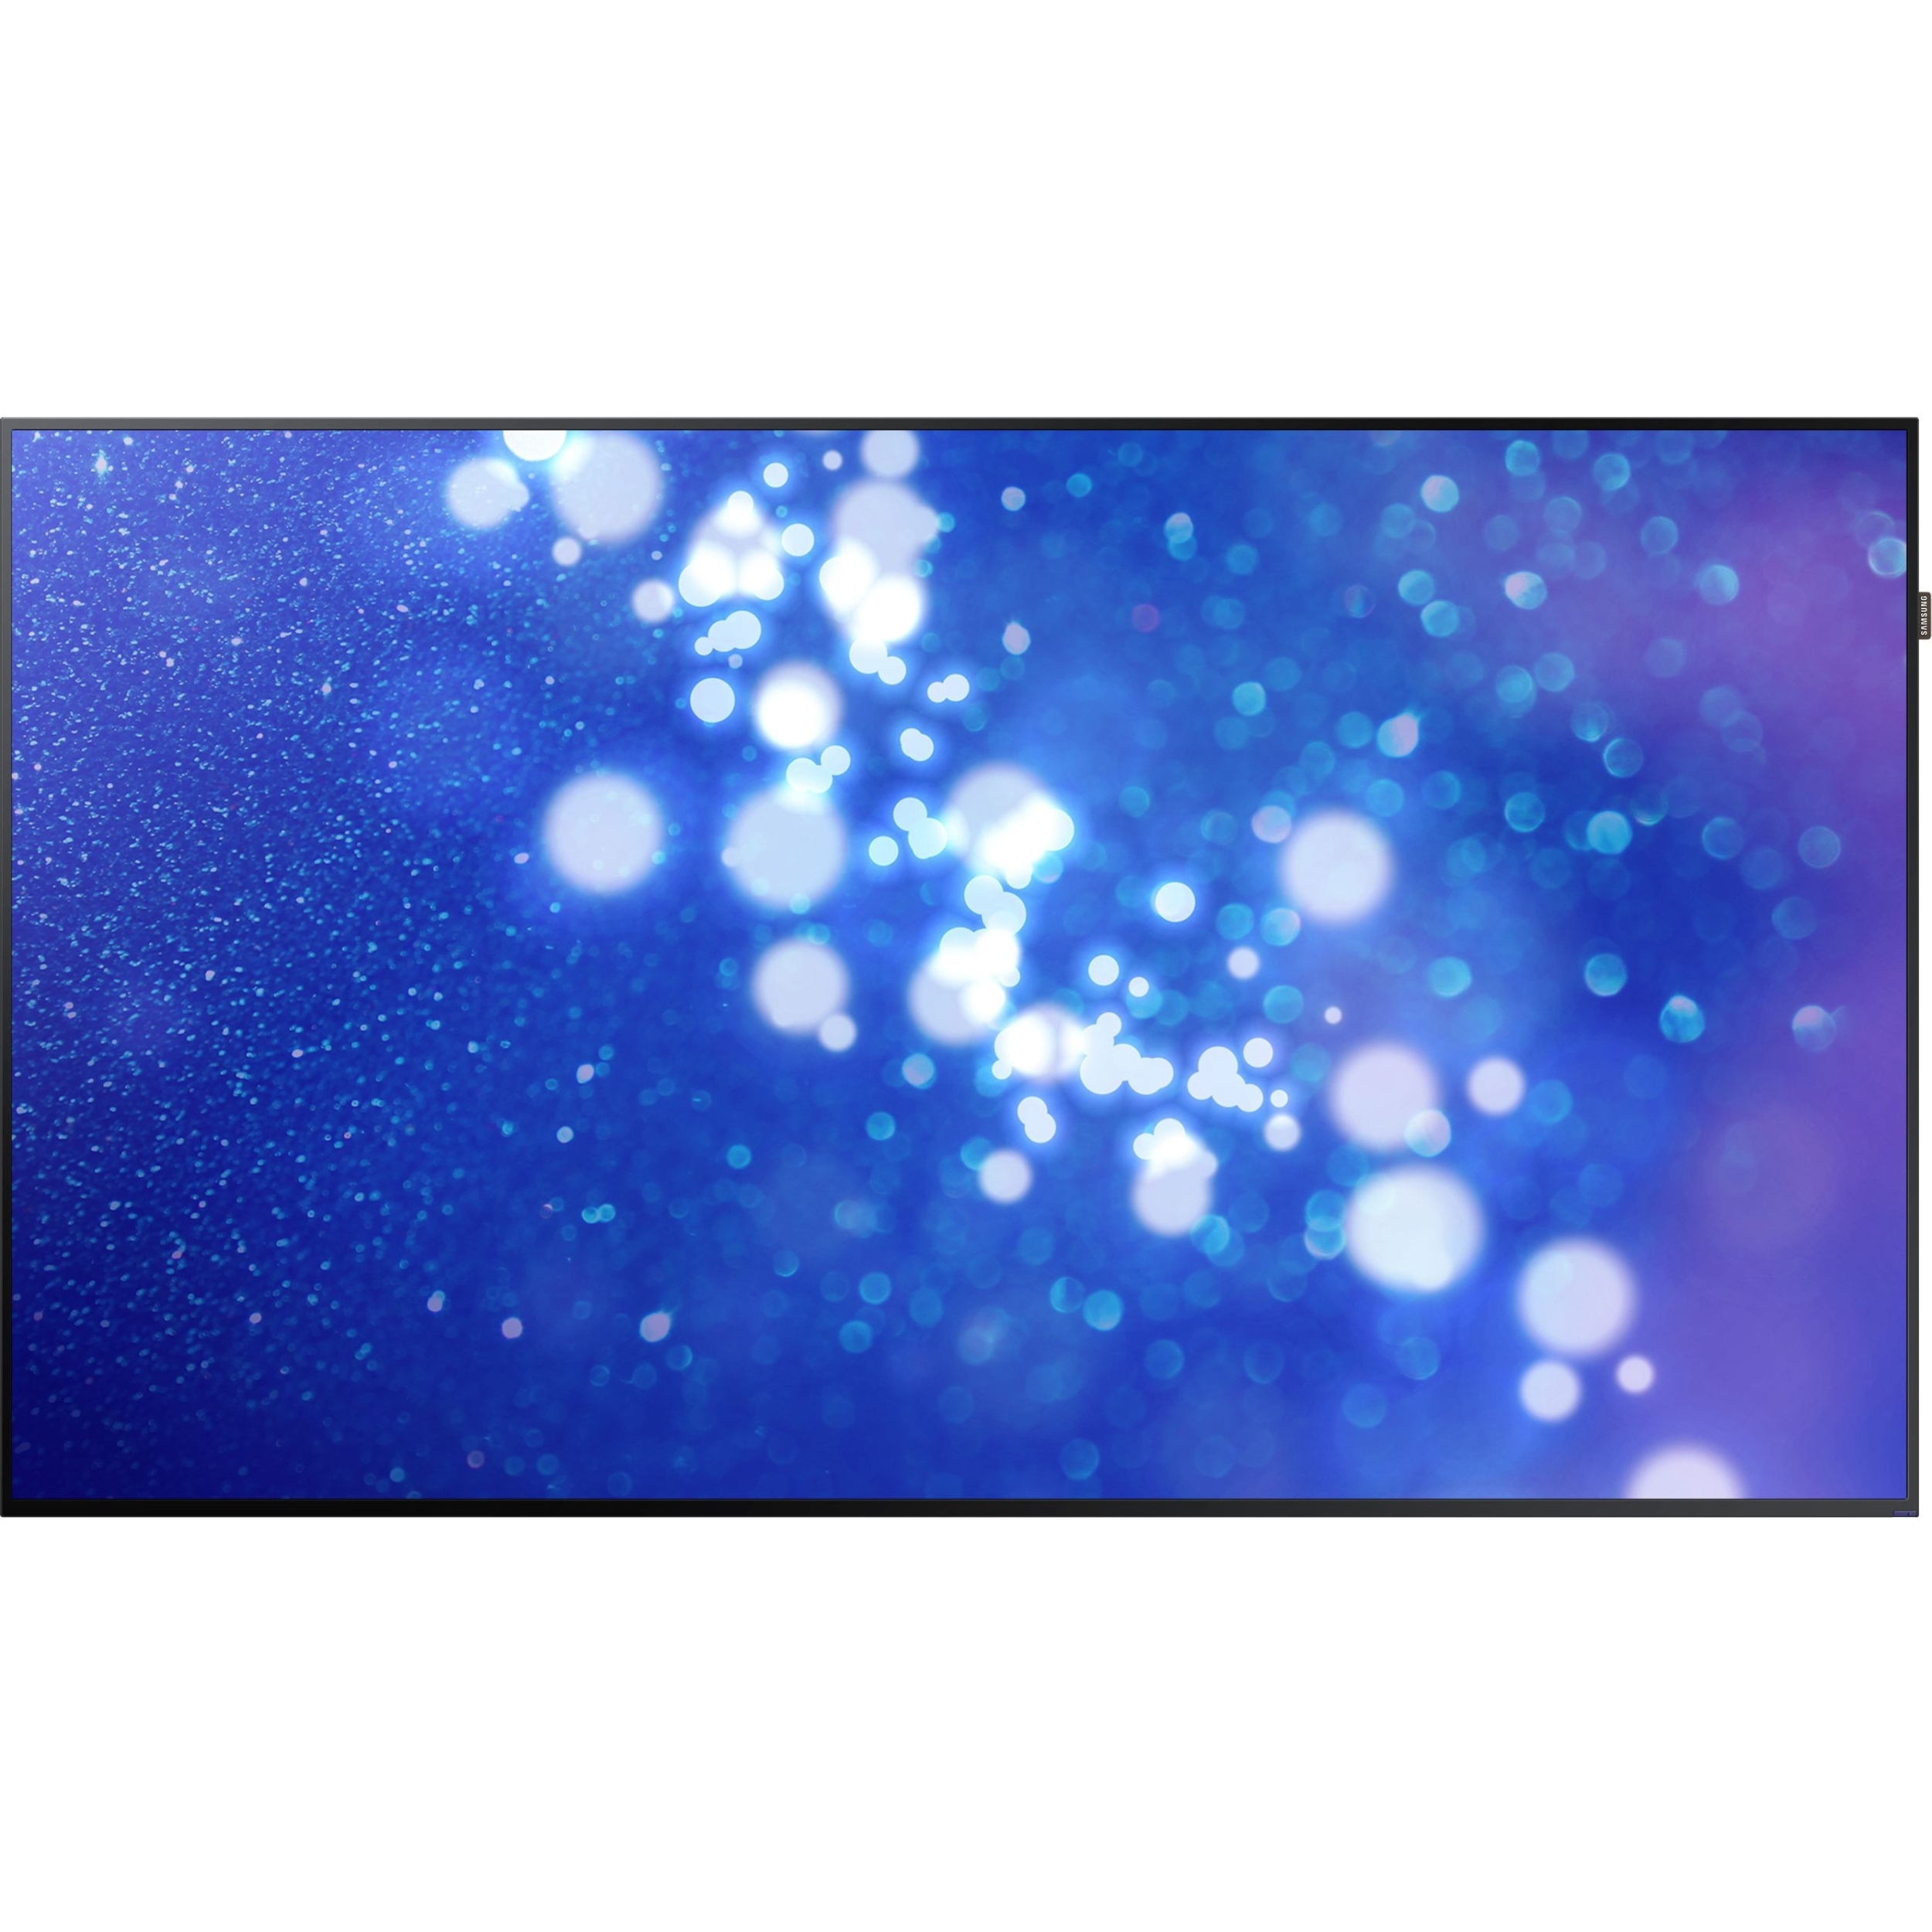 75IN COMMERCIAL LED LCD DISPLAY